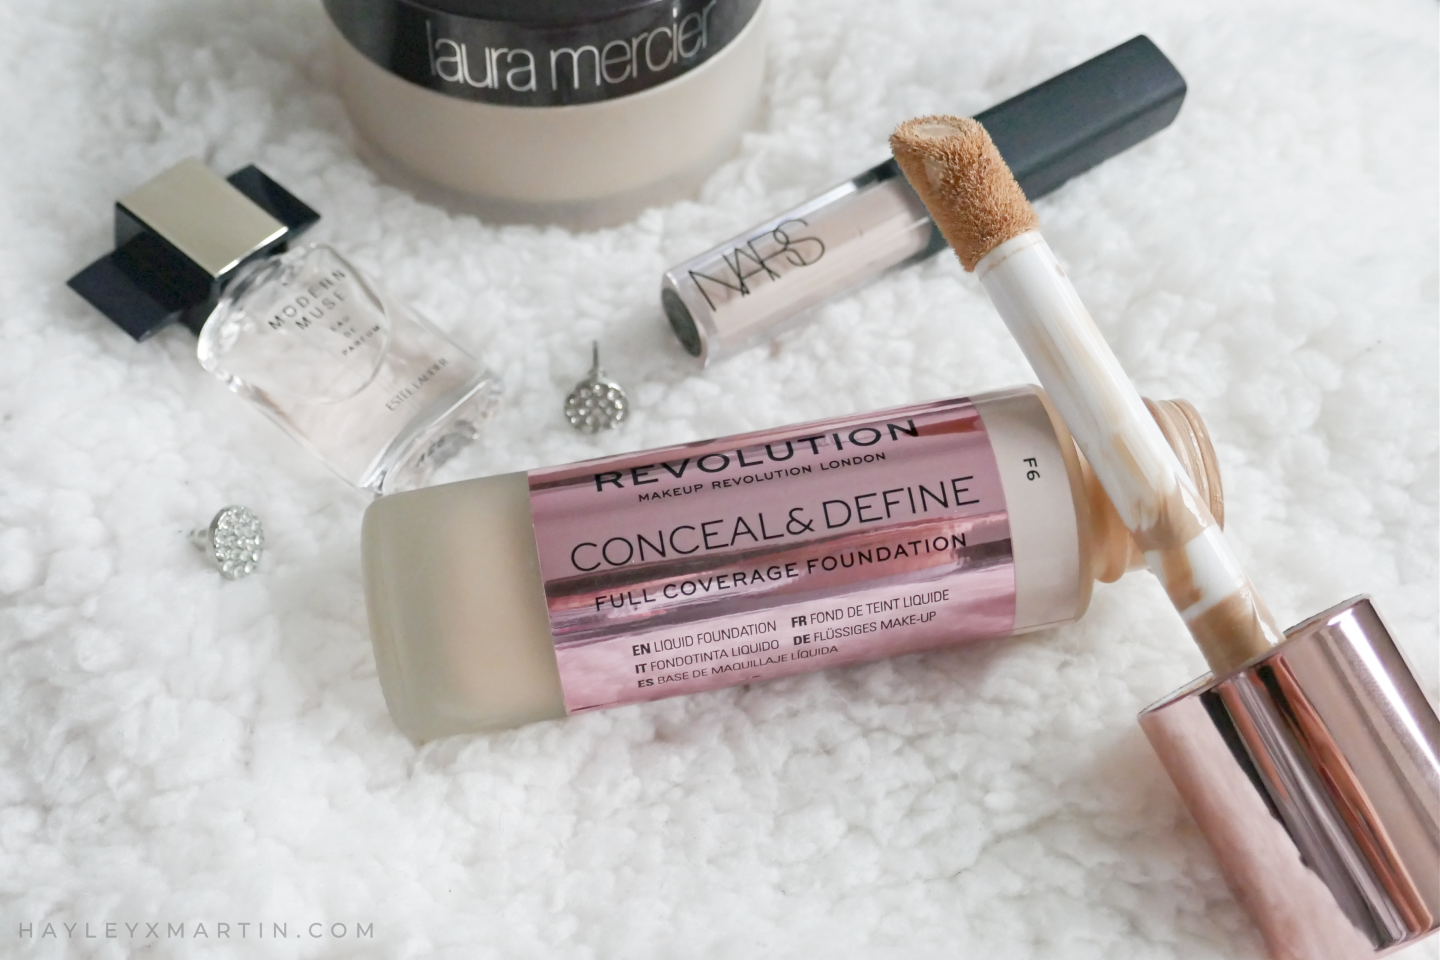 HAYLEYXMARTIN _ MAKEUP REVOLUTION CONCEAL & DEFINE FOUNDATION REVIEW SWATCH